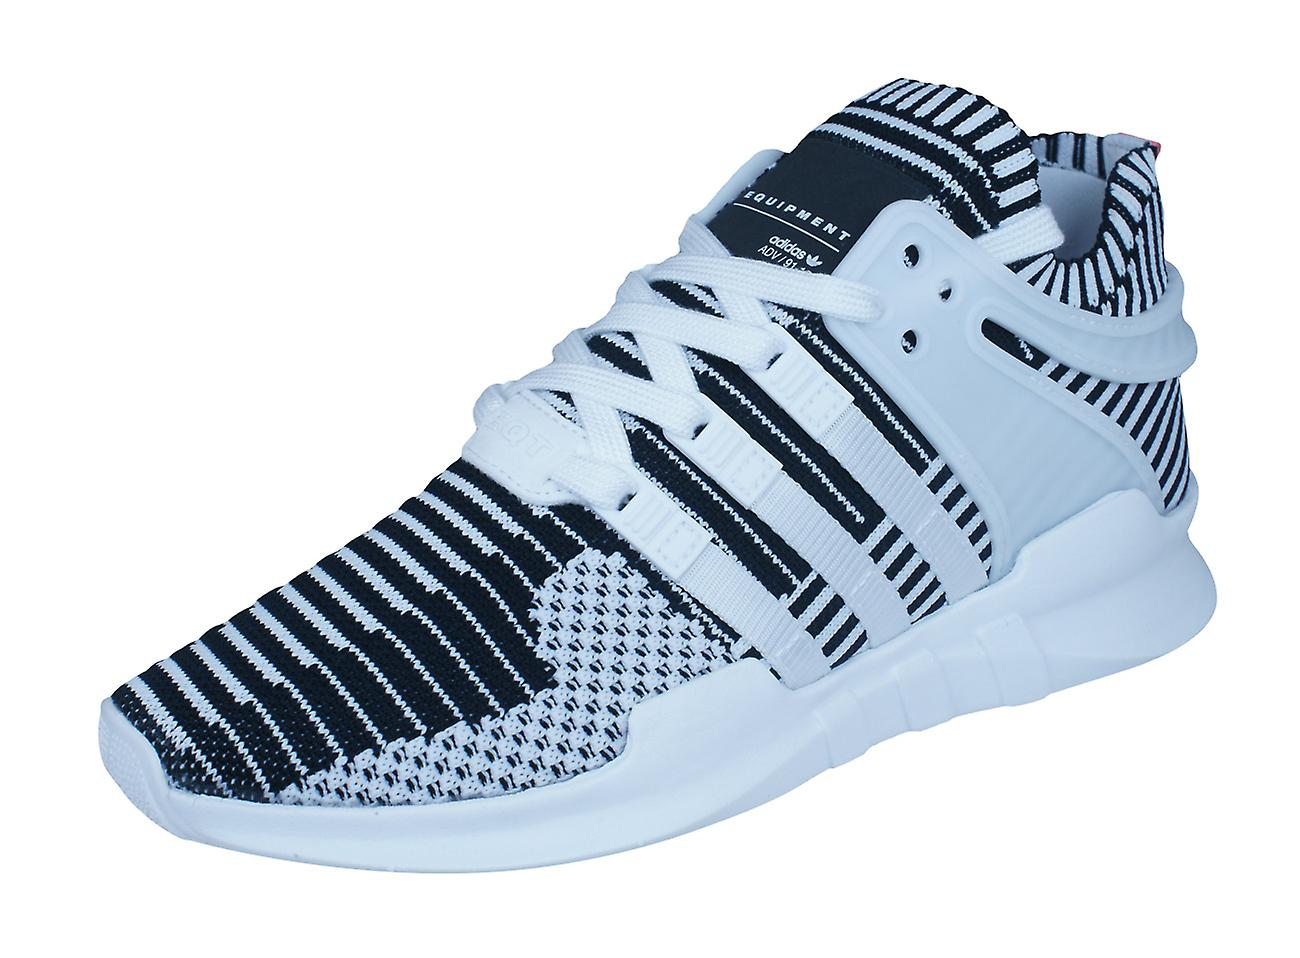 low priced 4c47a 00523 adidas Originals EQT Support ADV Primeknit Mens Trainers / Shoes - White